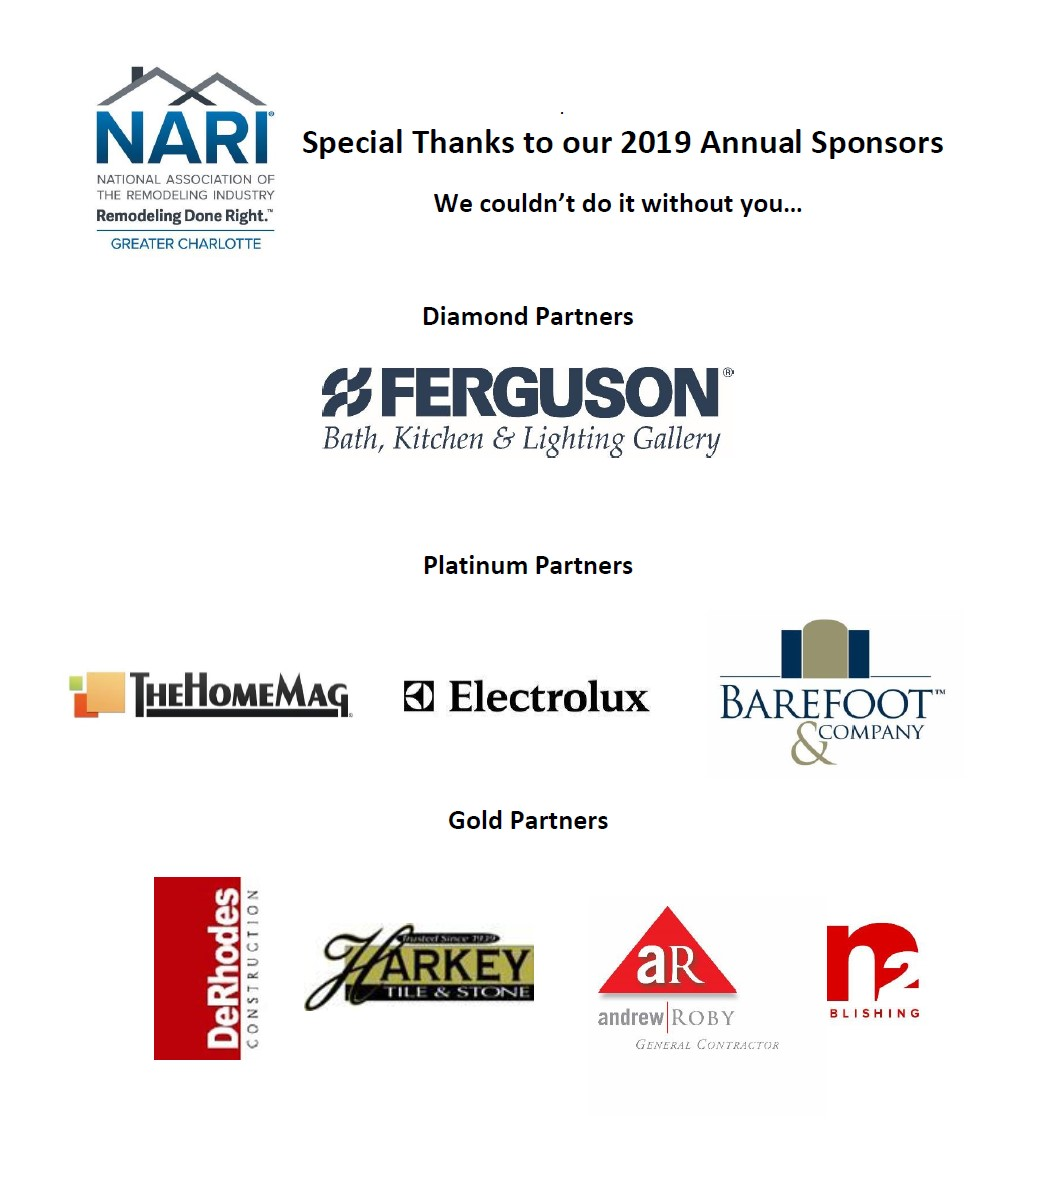 Thank you to our 2019 Annual Sponsors!